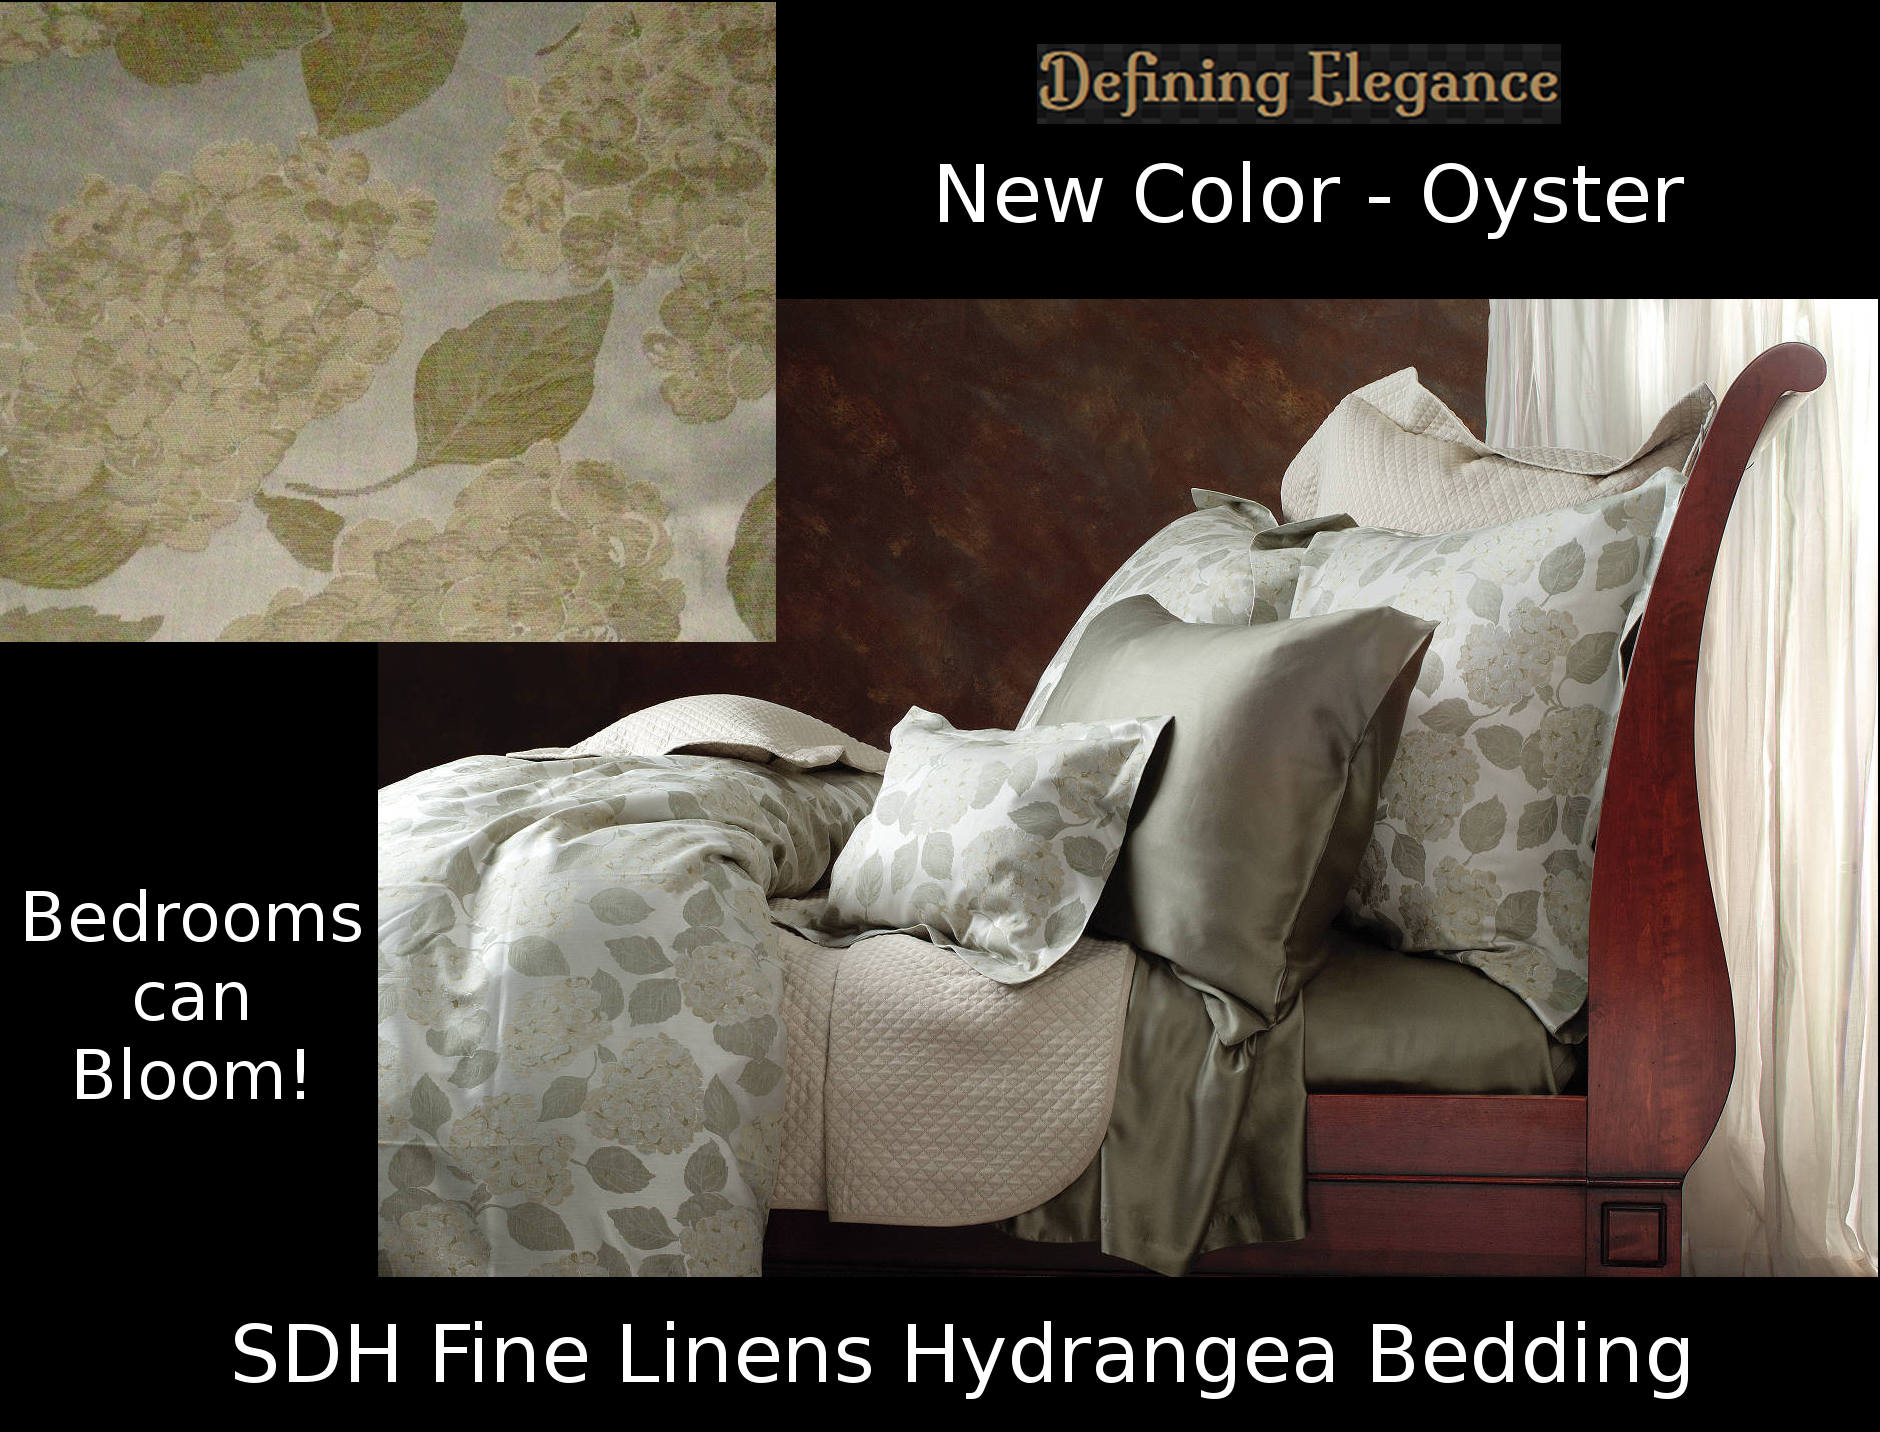 SDH Fine Linens Hydrangea bedding collection is available in two subtle tonal colorways.